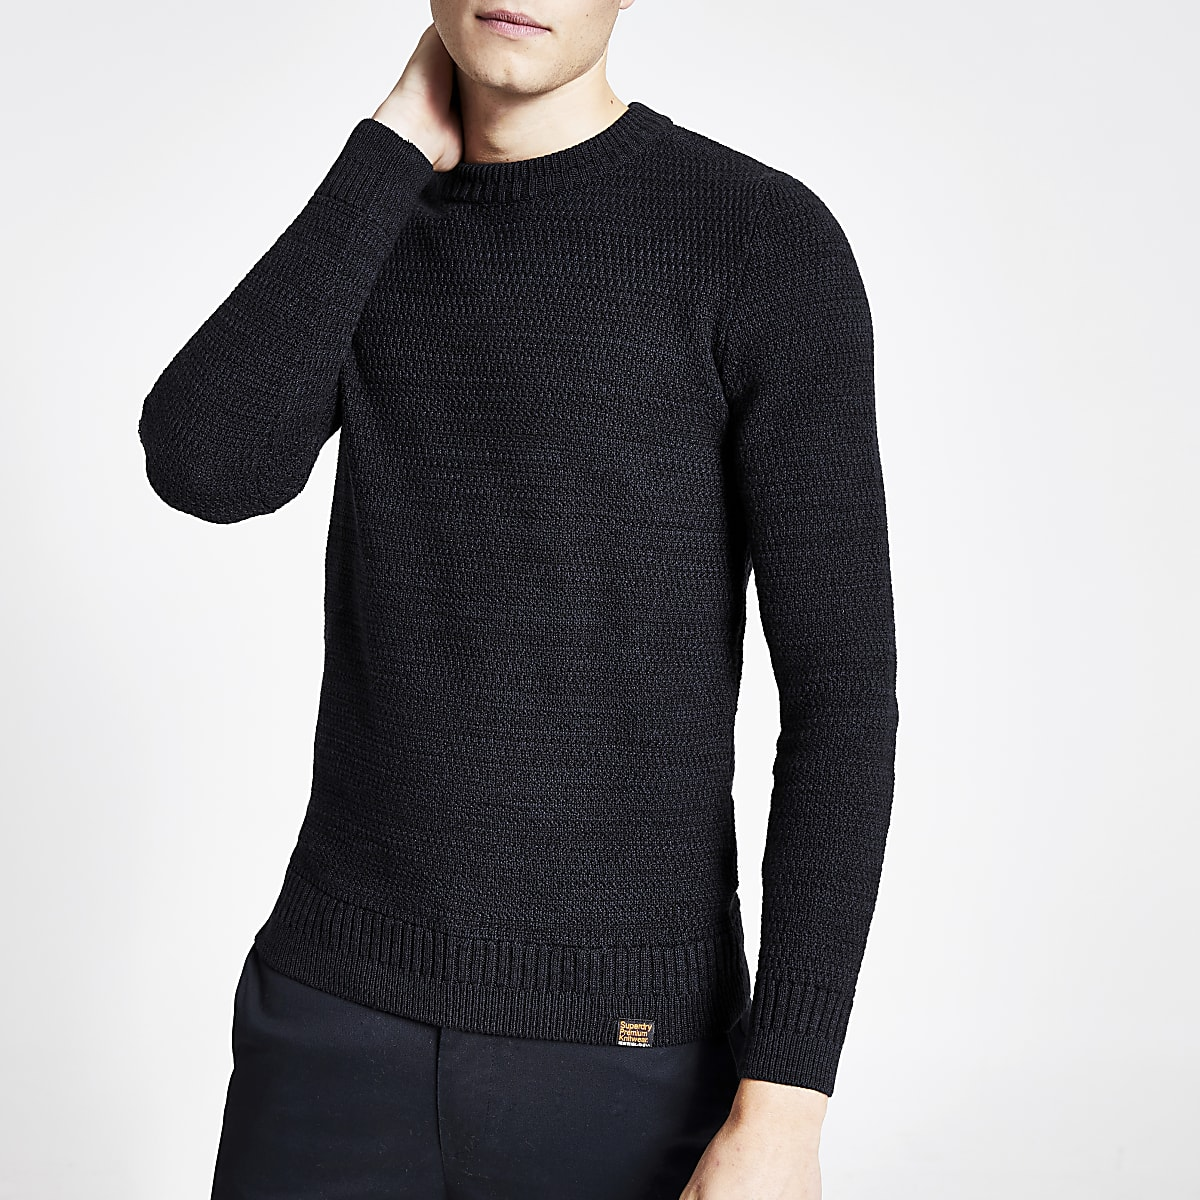 Superdry navy crew neck jumper